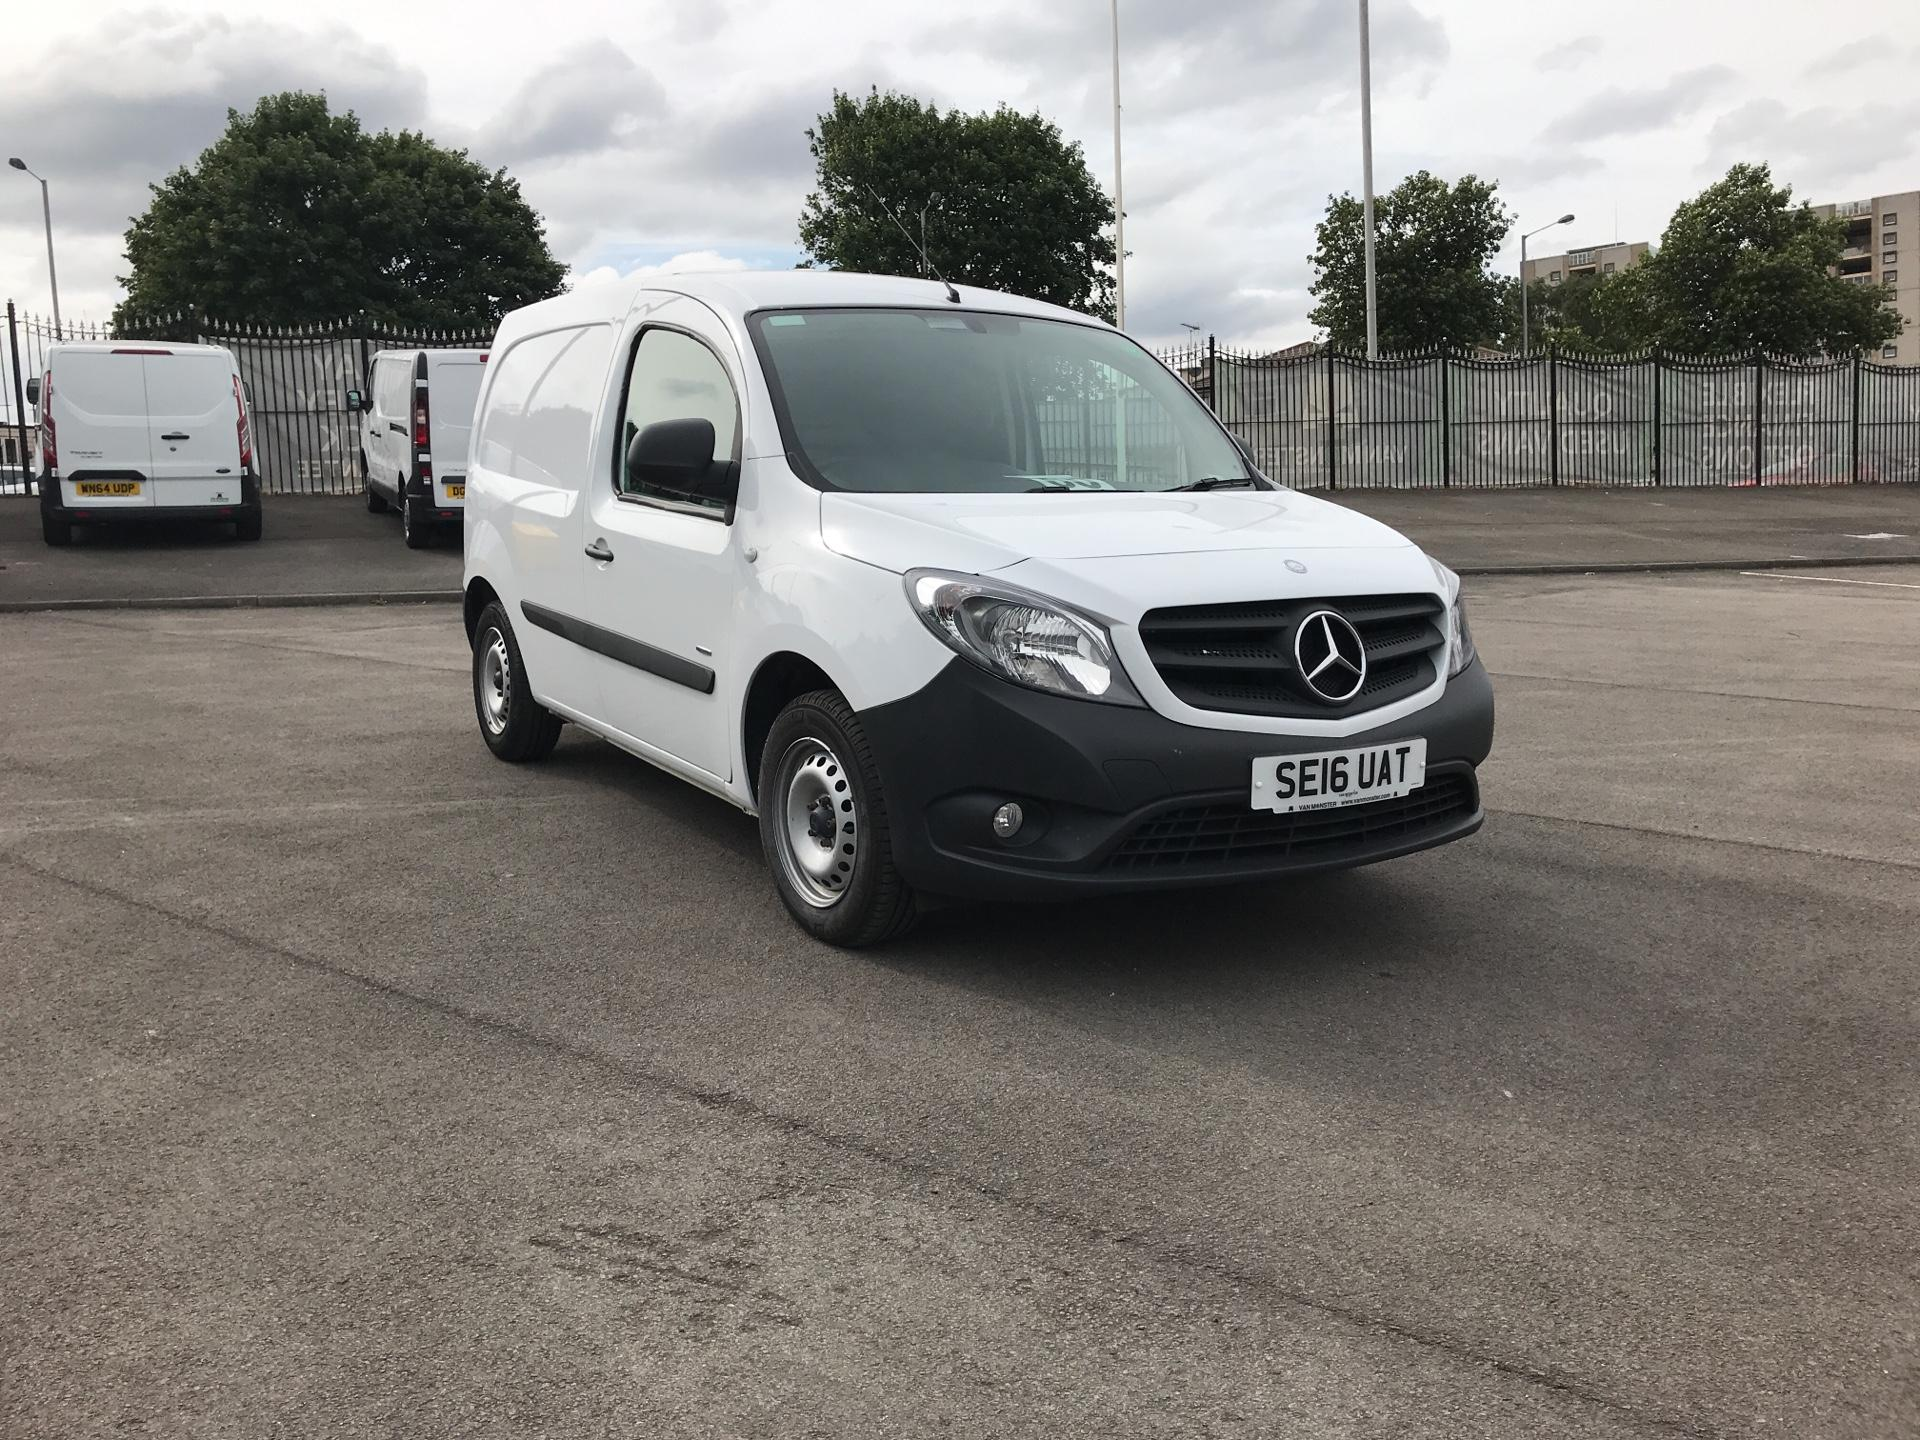 2016 Mercedes-Benz Citan 109 CDI BLUEEFFICIENCY VAN (SE16UAT)